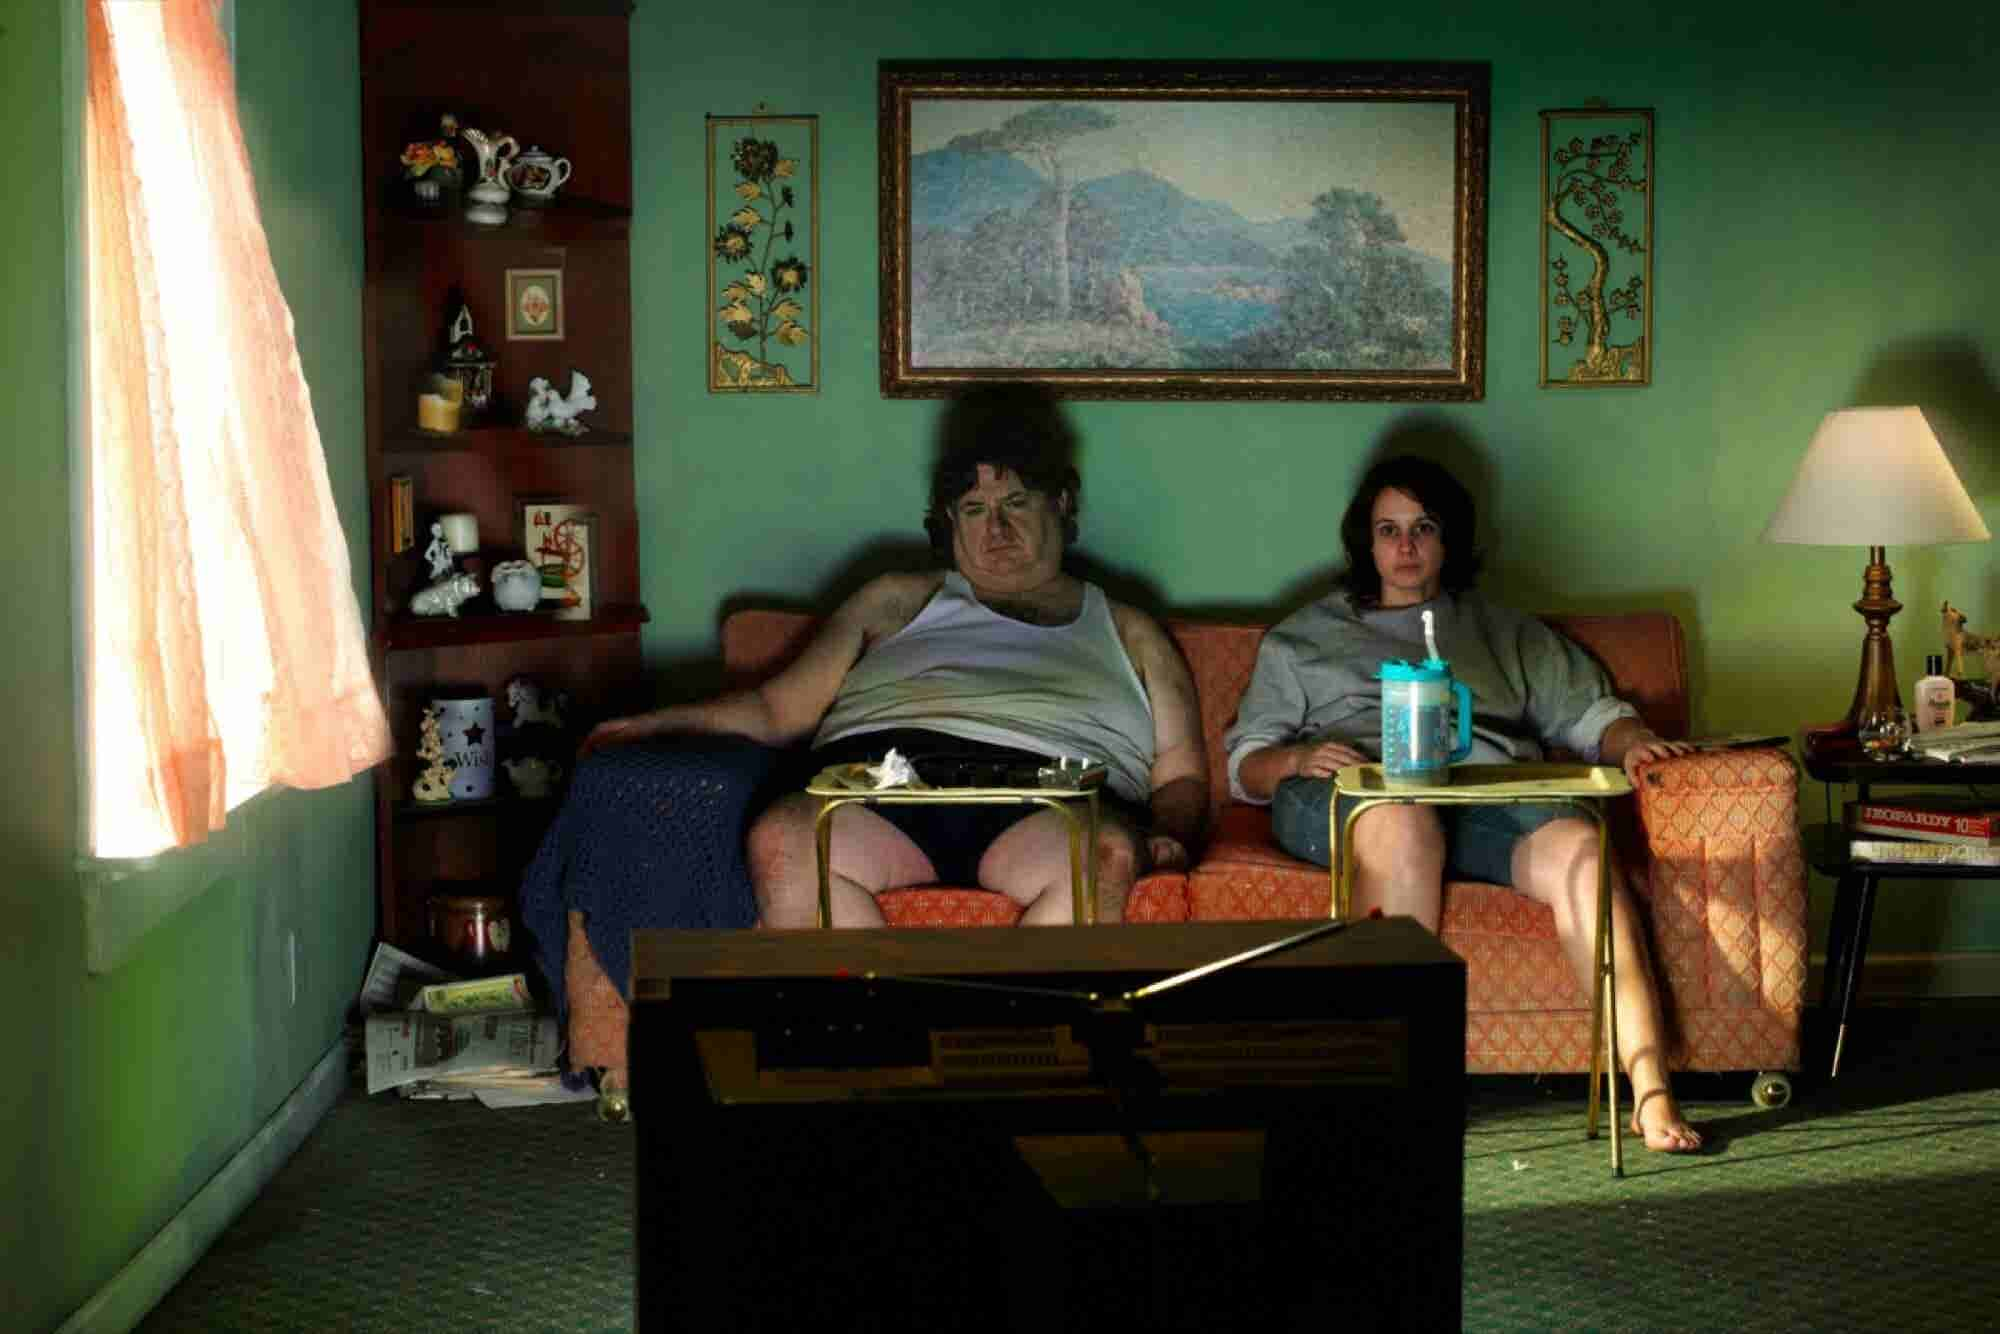 Attention Binge-Watchers: Watching Too Much TV Could Potentially Kill You